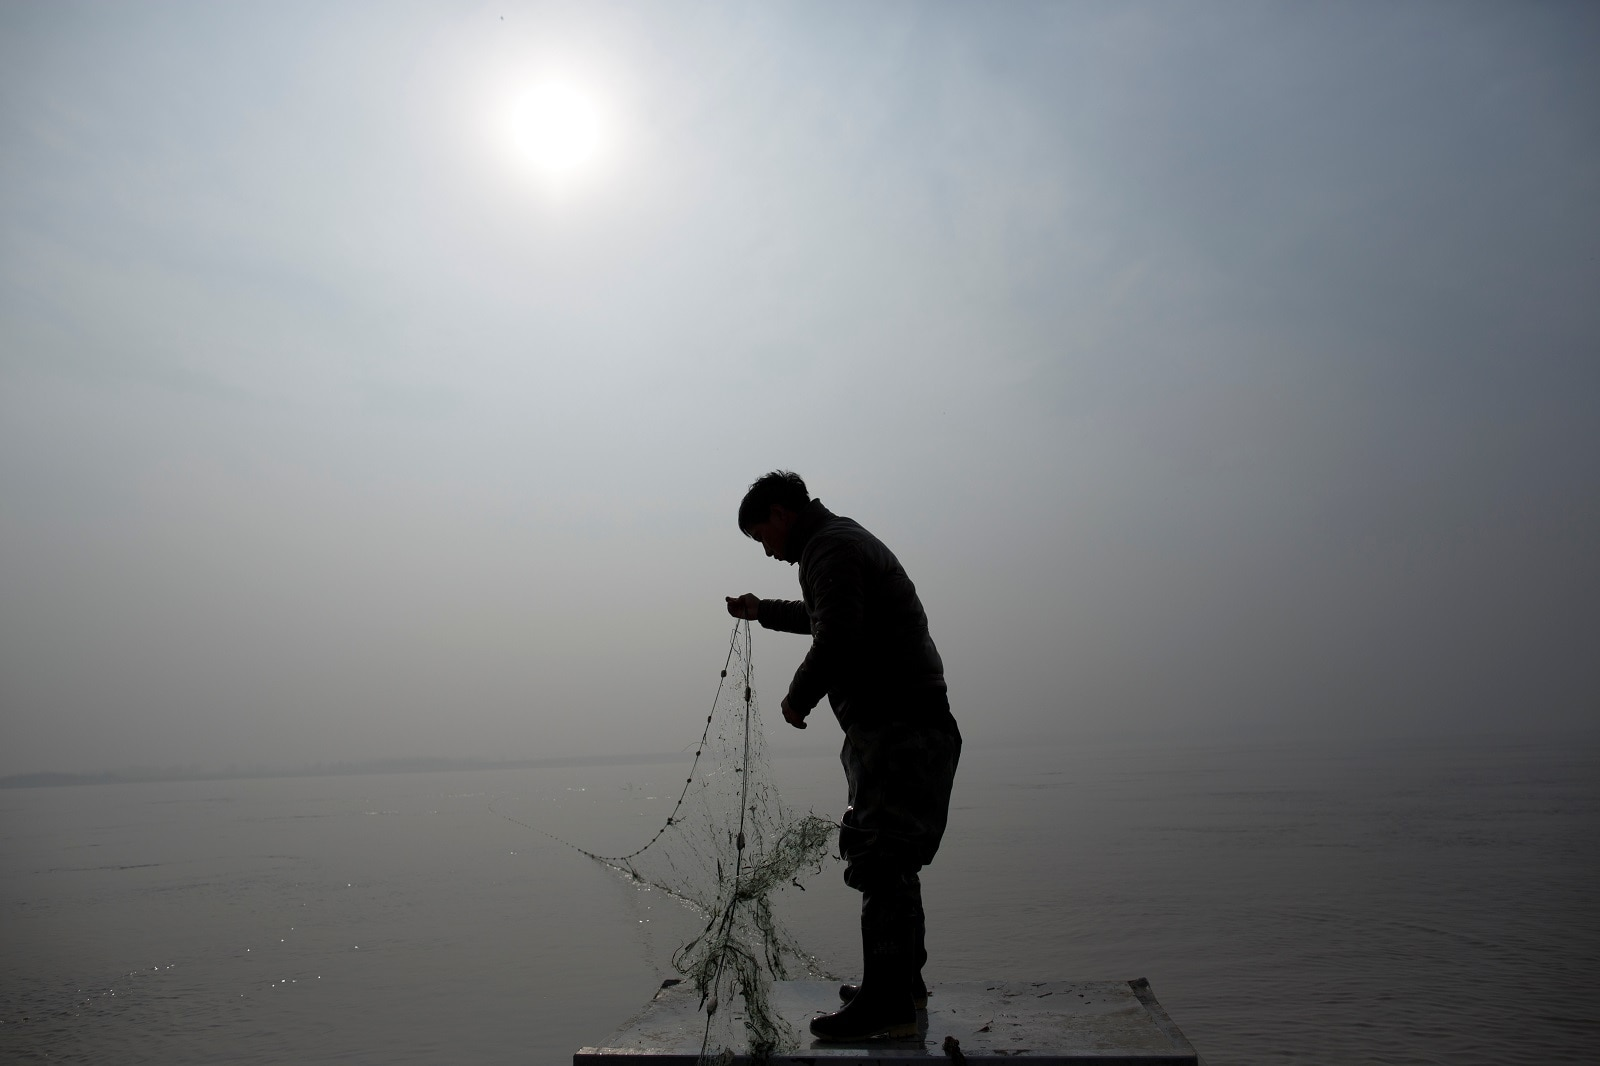 Fisherman Sun Lianxi, 32, stands in a boat as he drops his net into the waters of the Yellow River on the northern outskirts of Zhengzhou, Henan province, China, February 21, 2019. REUTERS/Thomas Peter